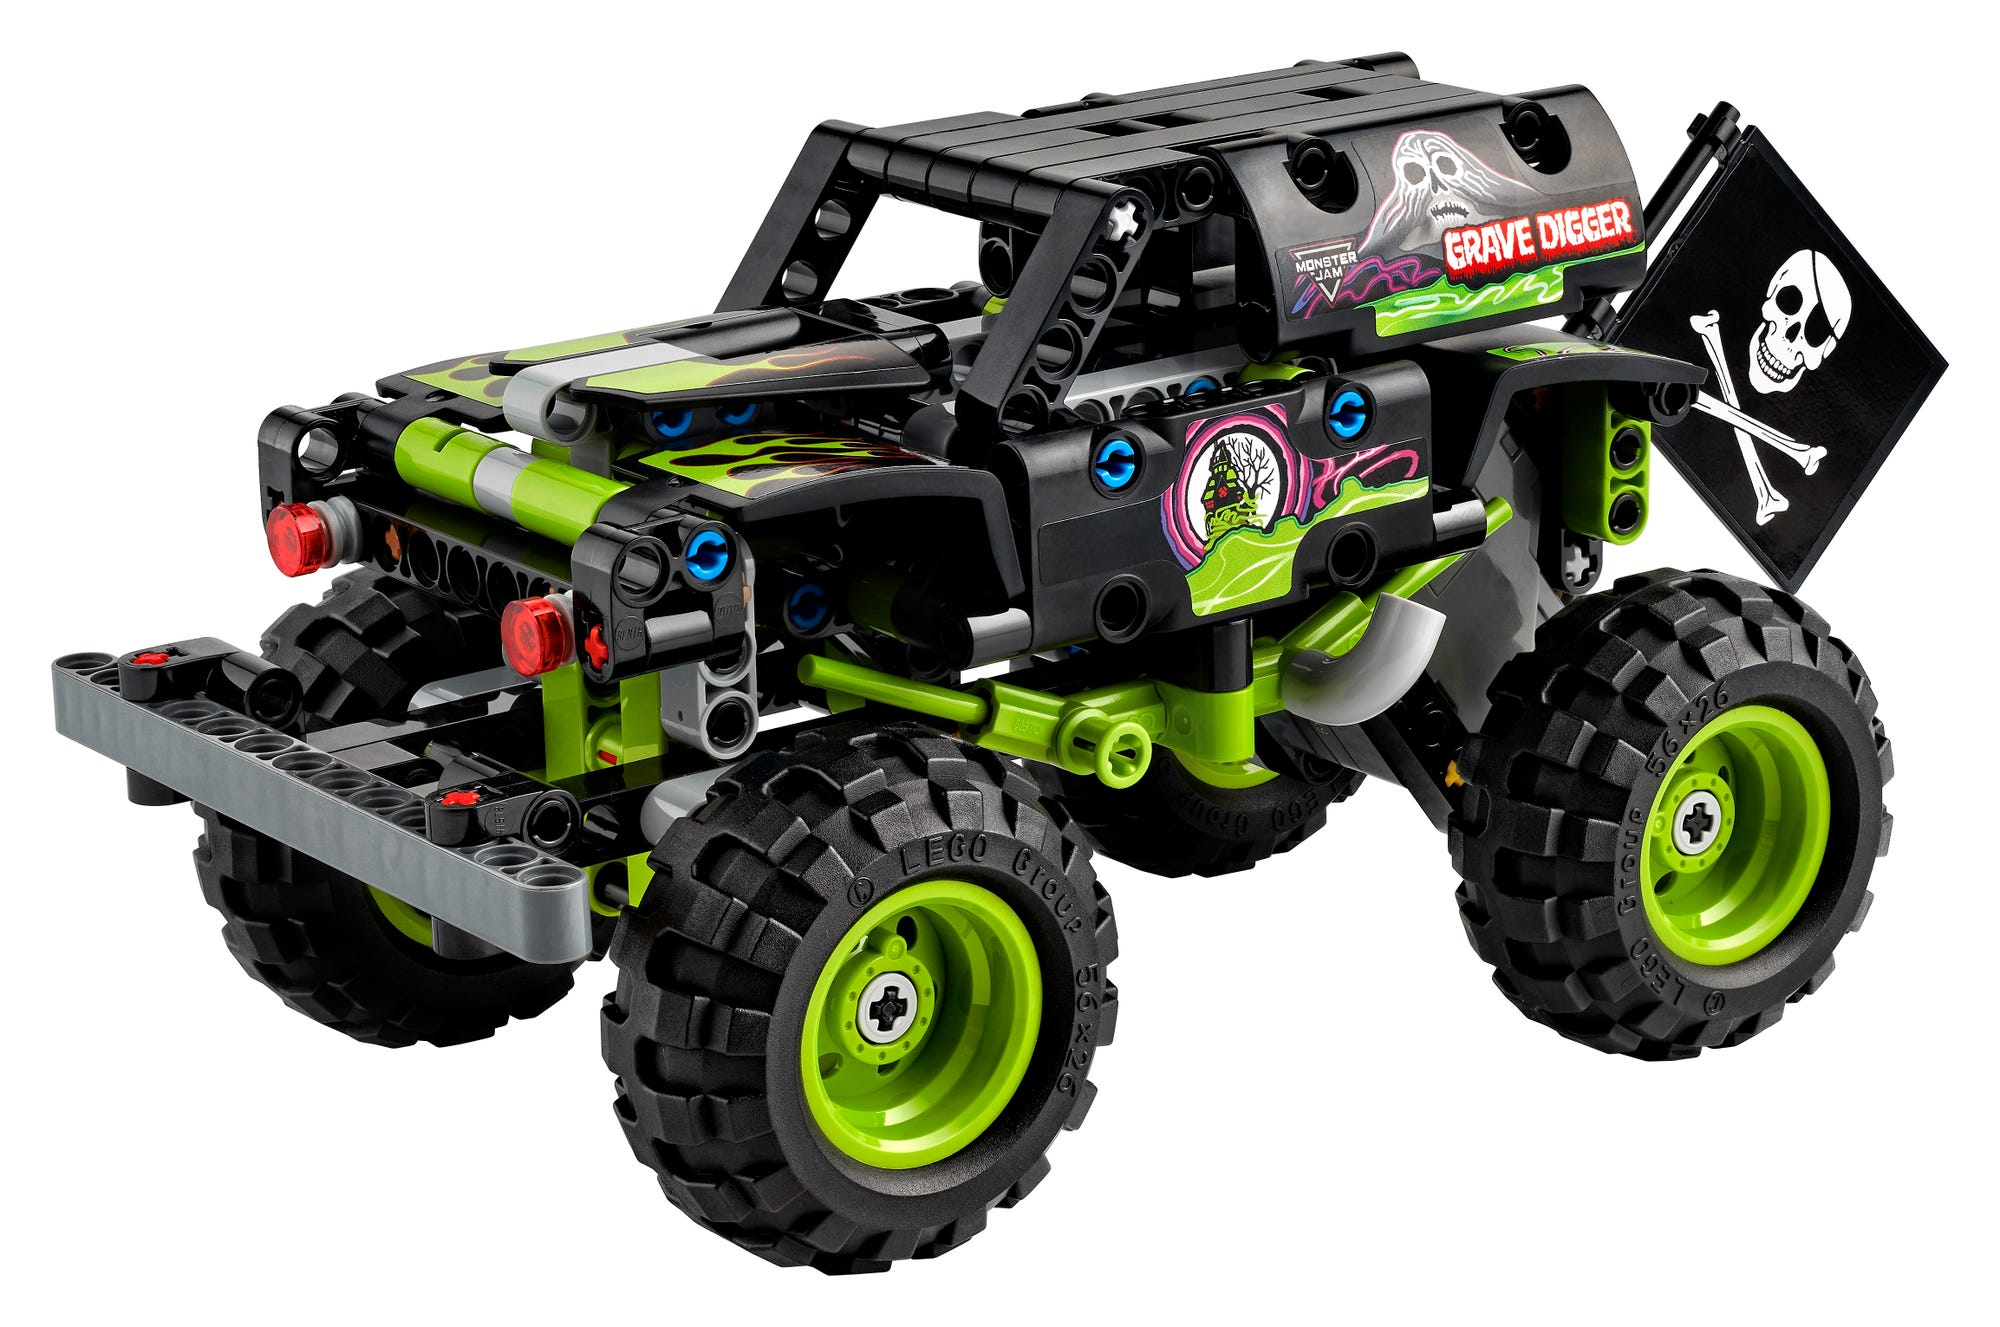 LEGO Technic 42118 Monster Jam Grave Digger (1)